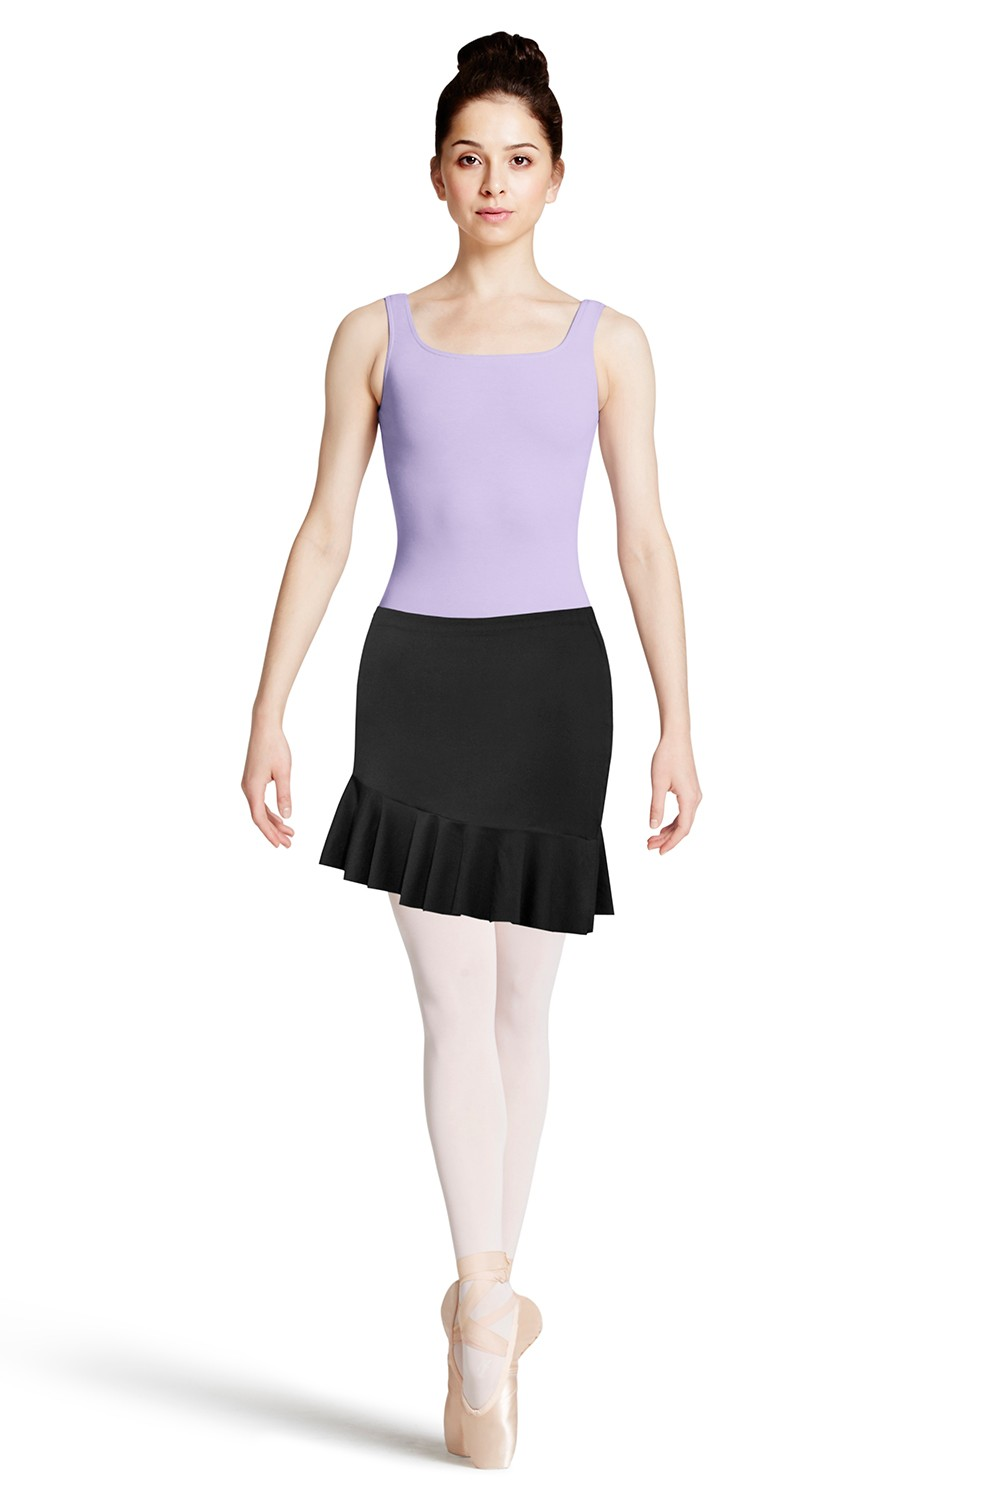 Pull On Asymmetrical Skirt Women's Dance Skirts